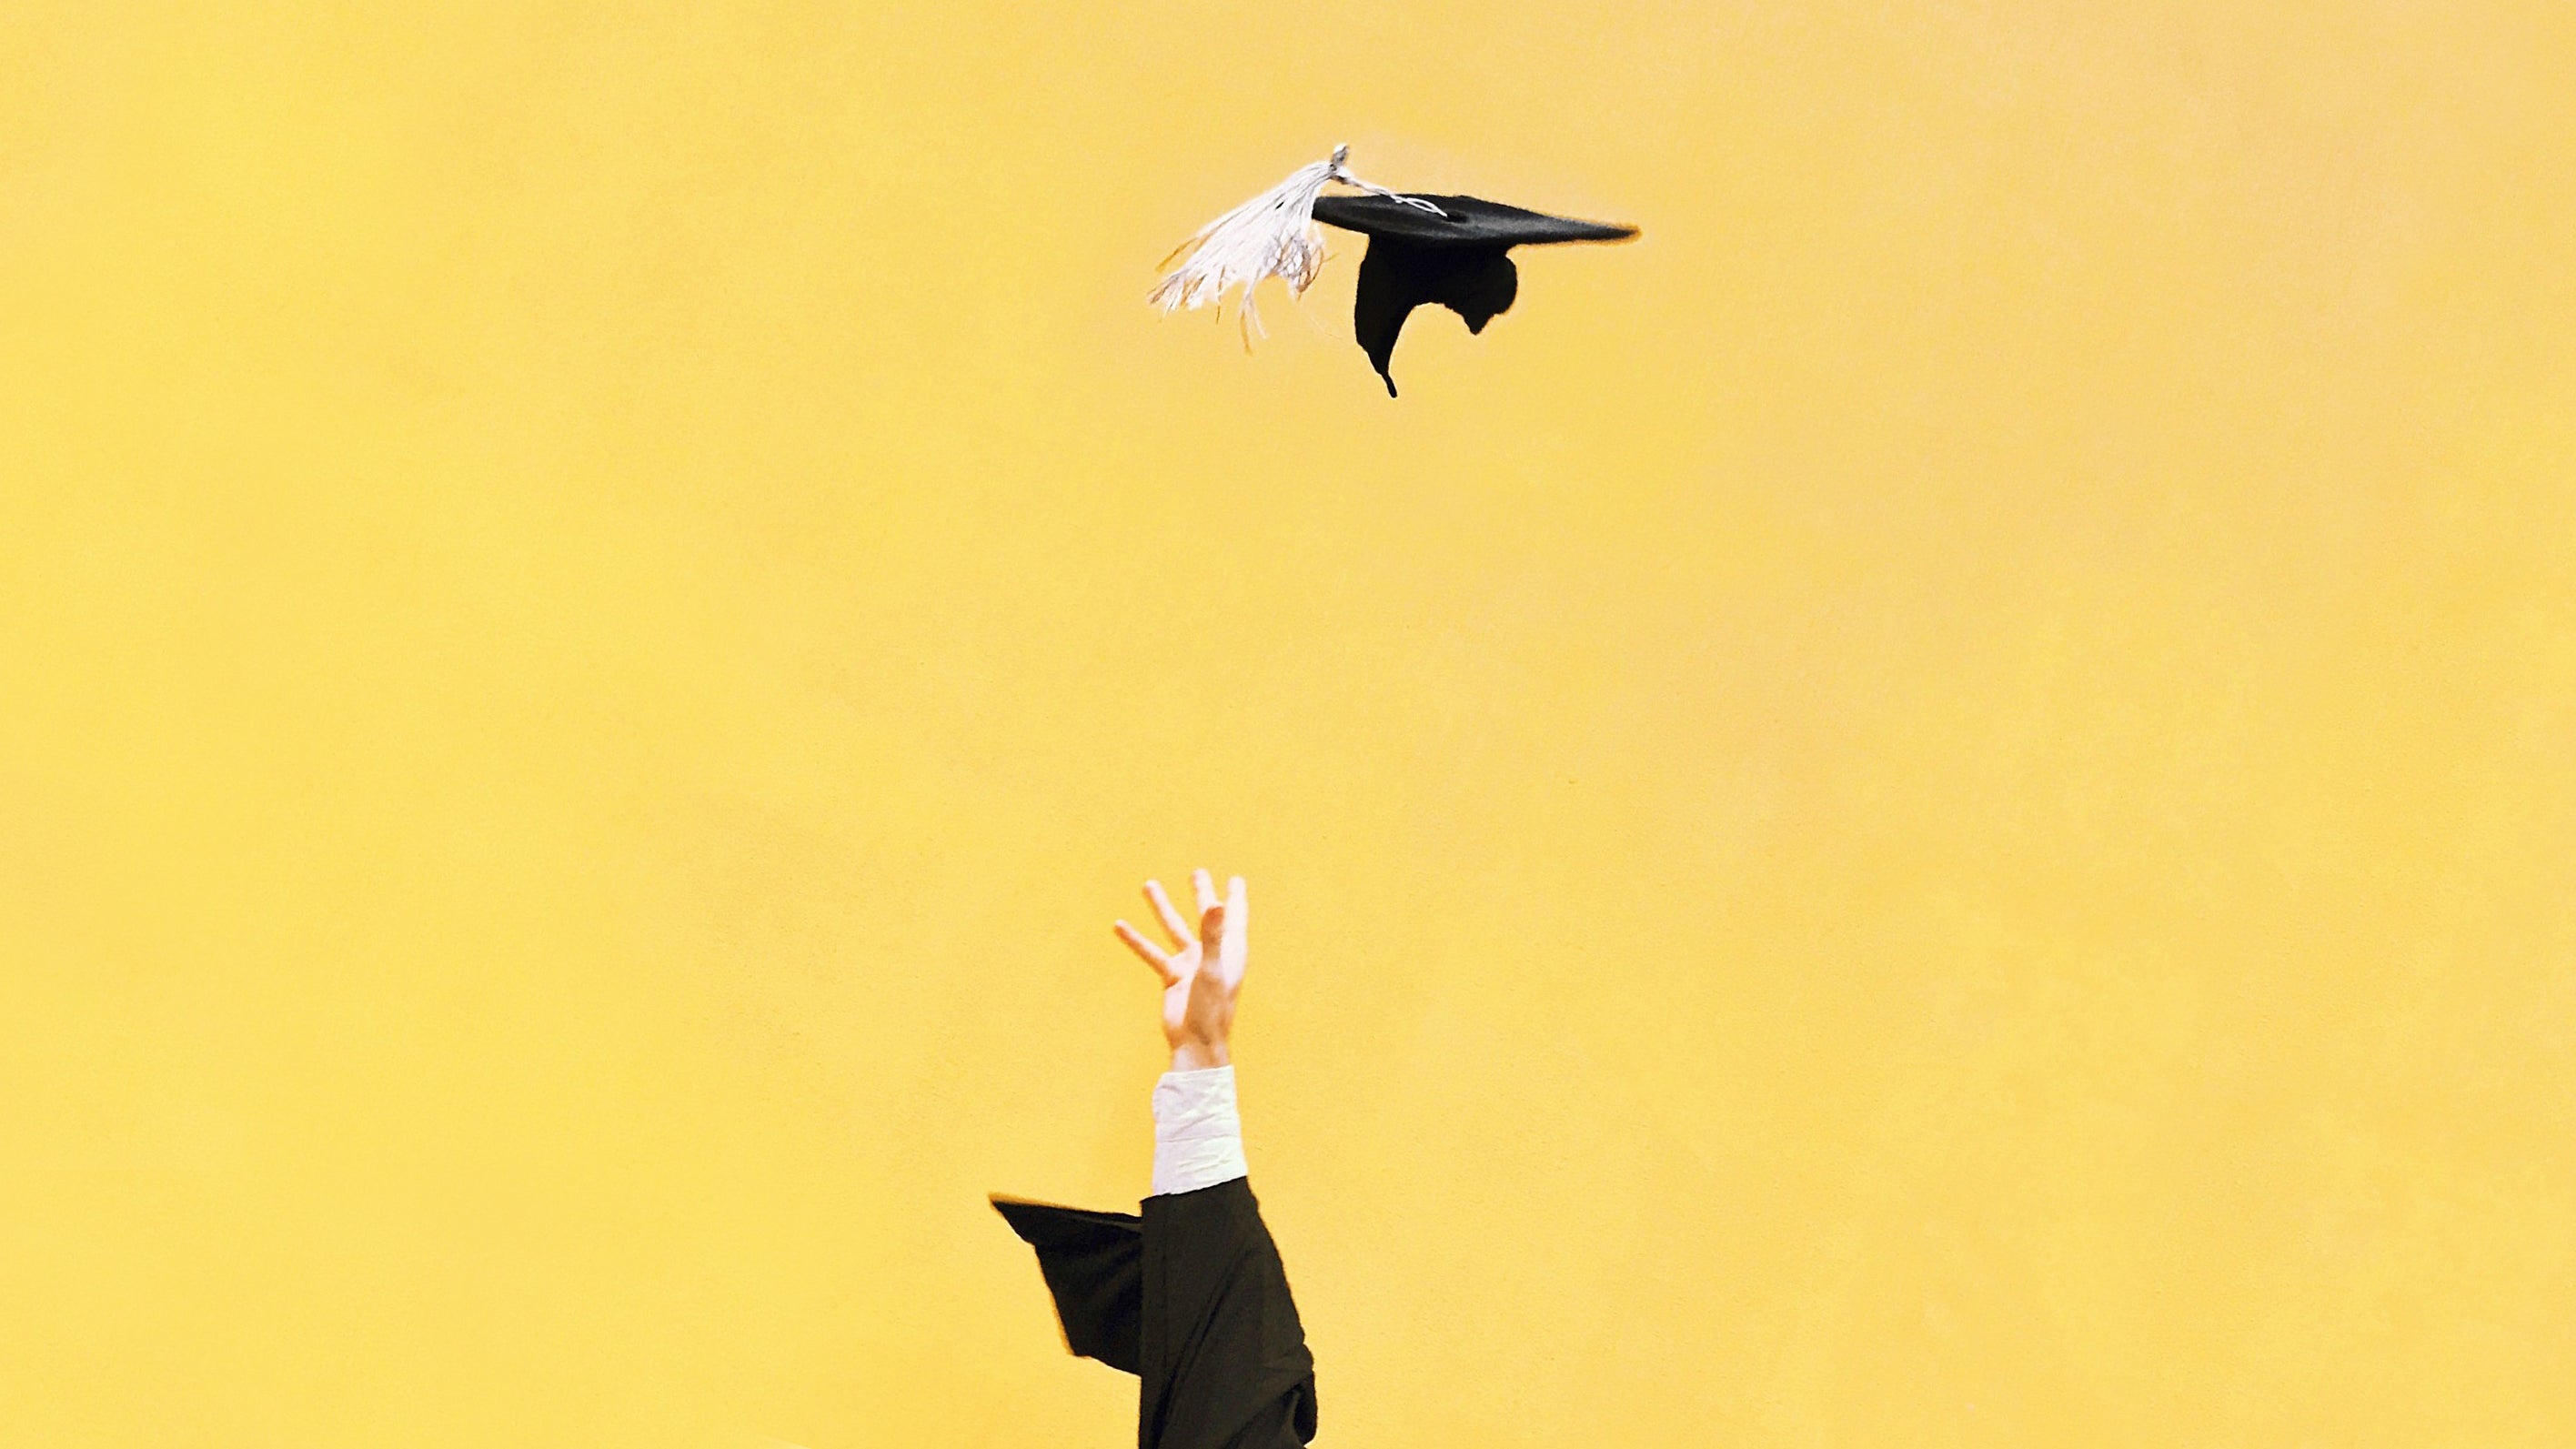 <p>Hand throwing mortarboard on yellow background.</p>